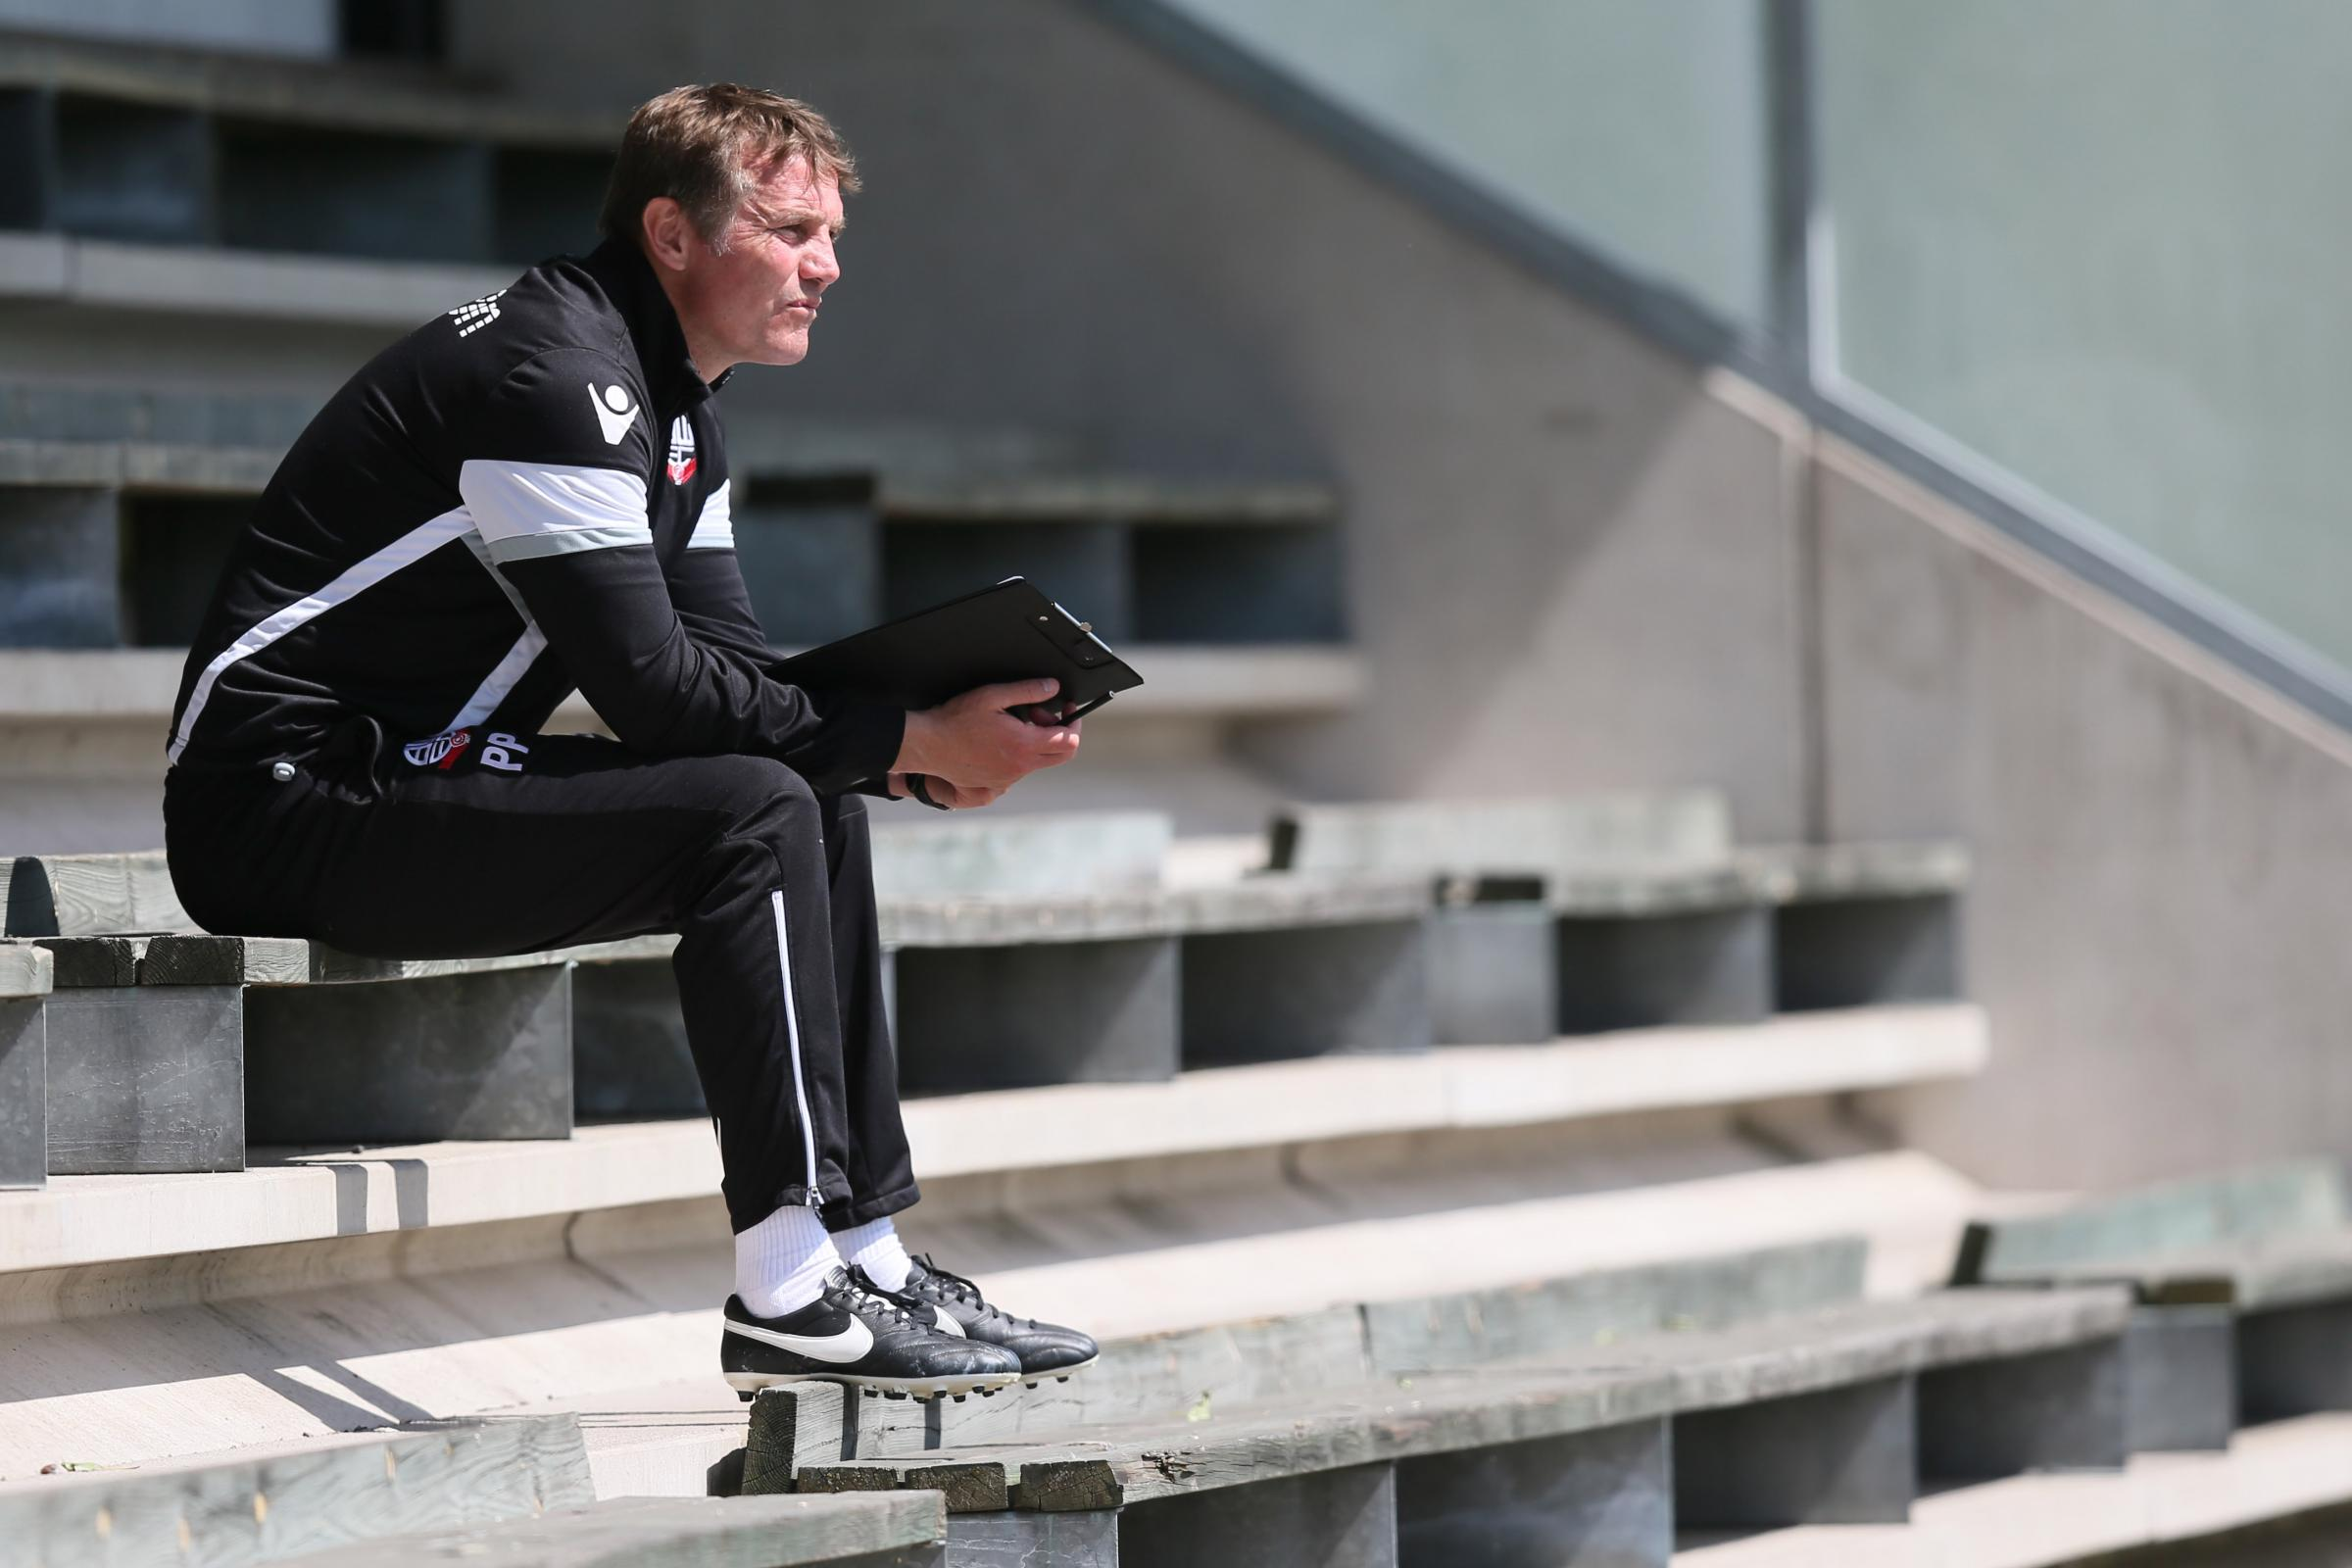 ALTERED ANGLE: Phil Parkinson may have to retreat to the stands in the near future